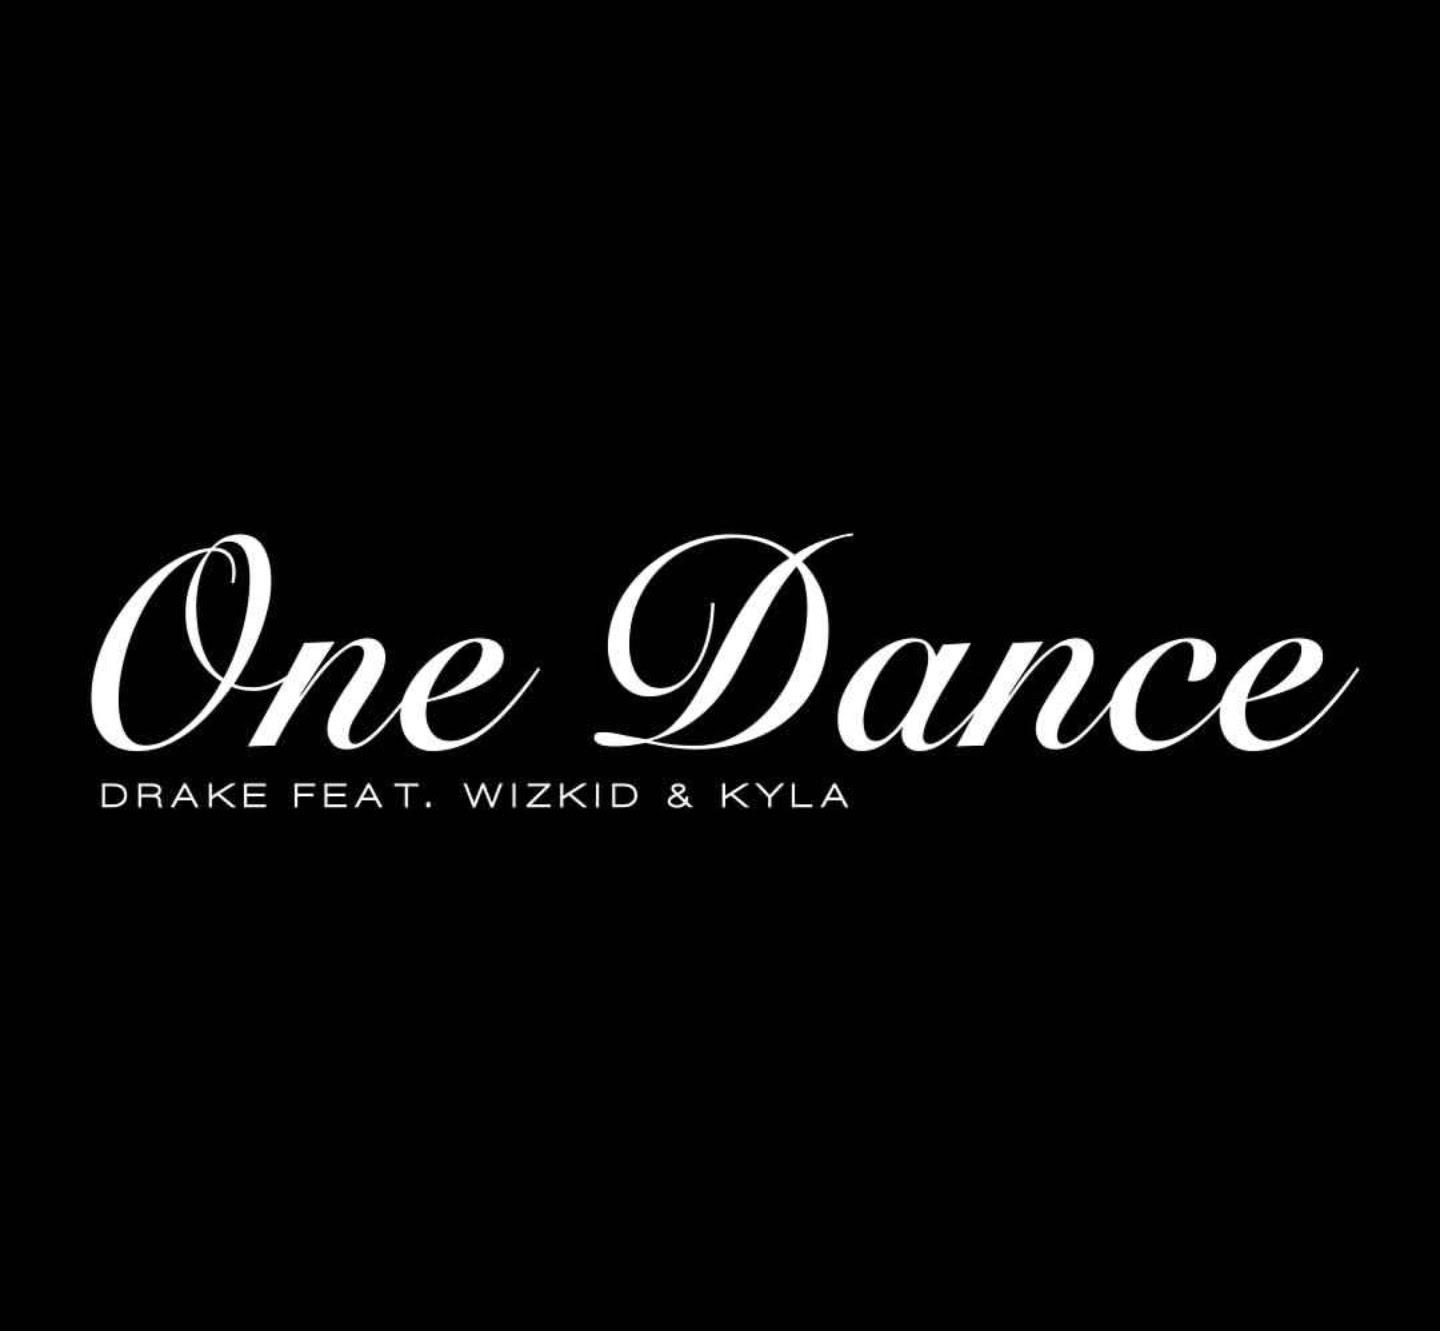 One dance – Drake ft. Wizkid & Kyla